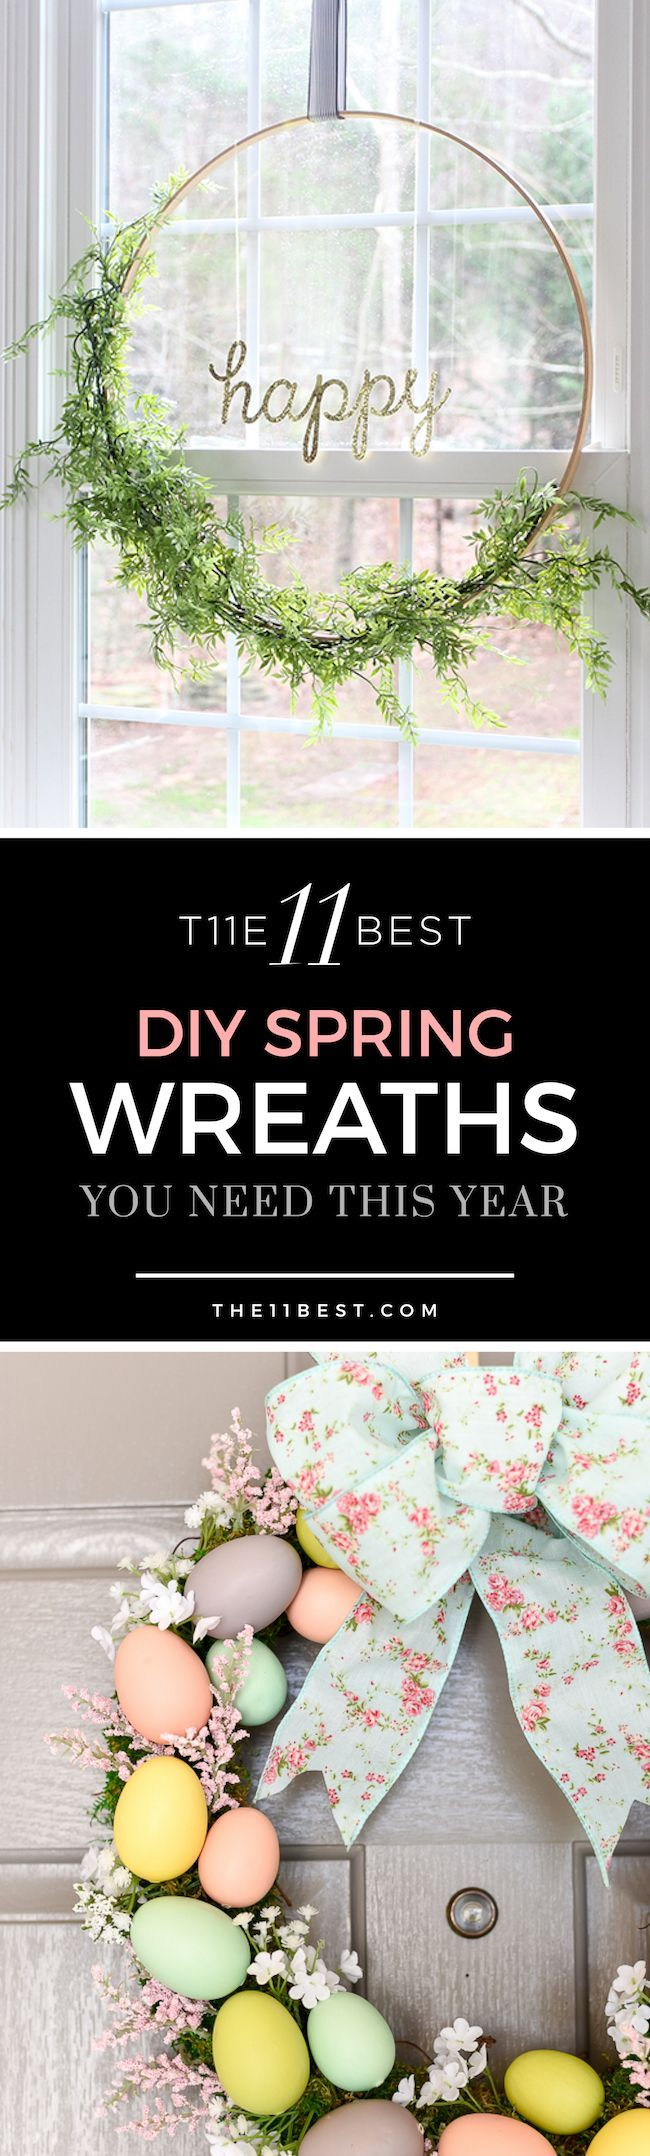 DIY spring wreath ideas. Tulip wreath. Easter wreath. Easter egg wreath. Hose wreath.